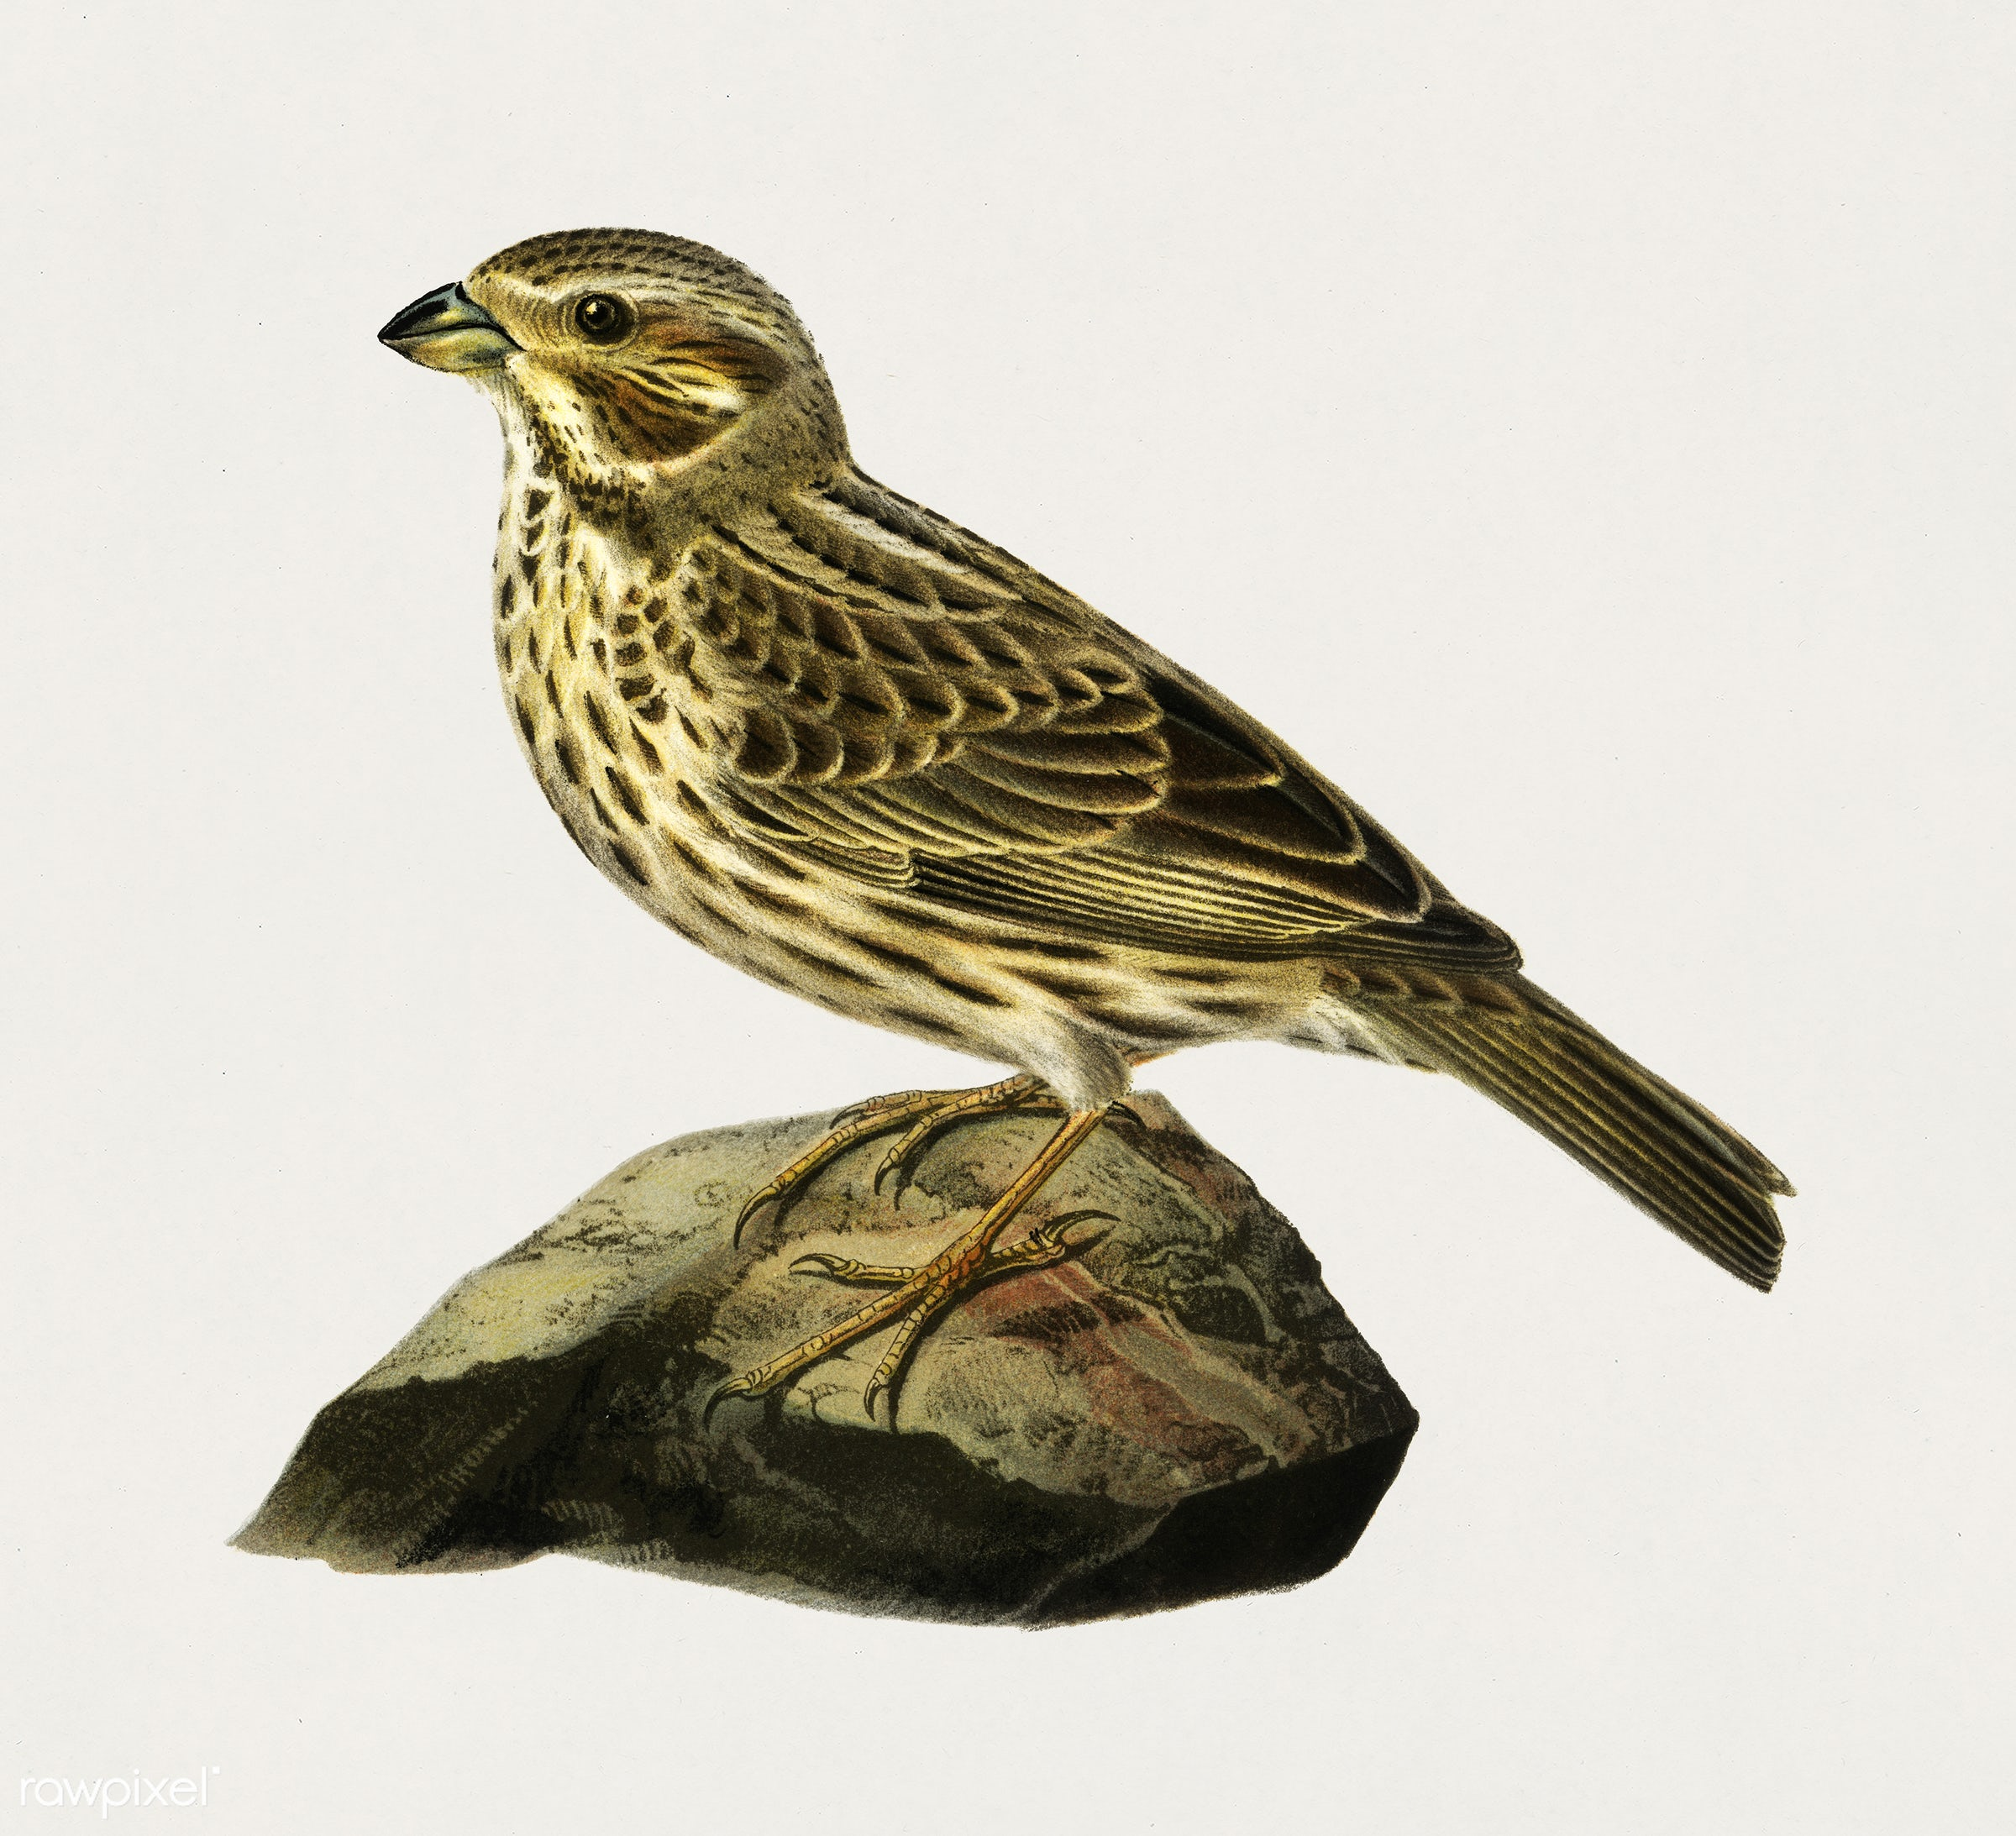 Corn bunting (EMBERIZA CARLANDRA) illustrated by the von Wright brothers. Digitally enhanced from our own 1929 folio version...